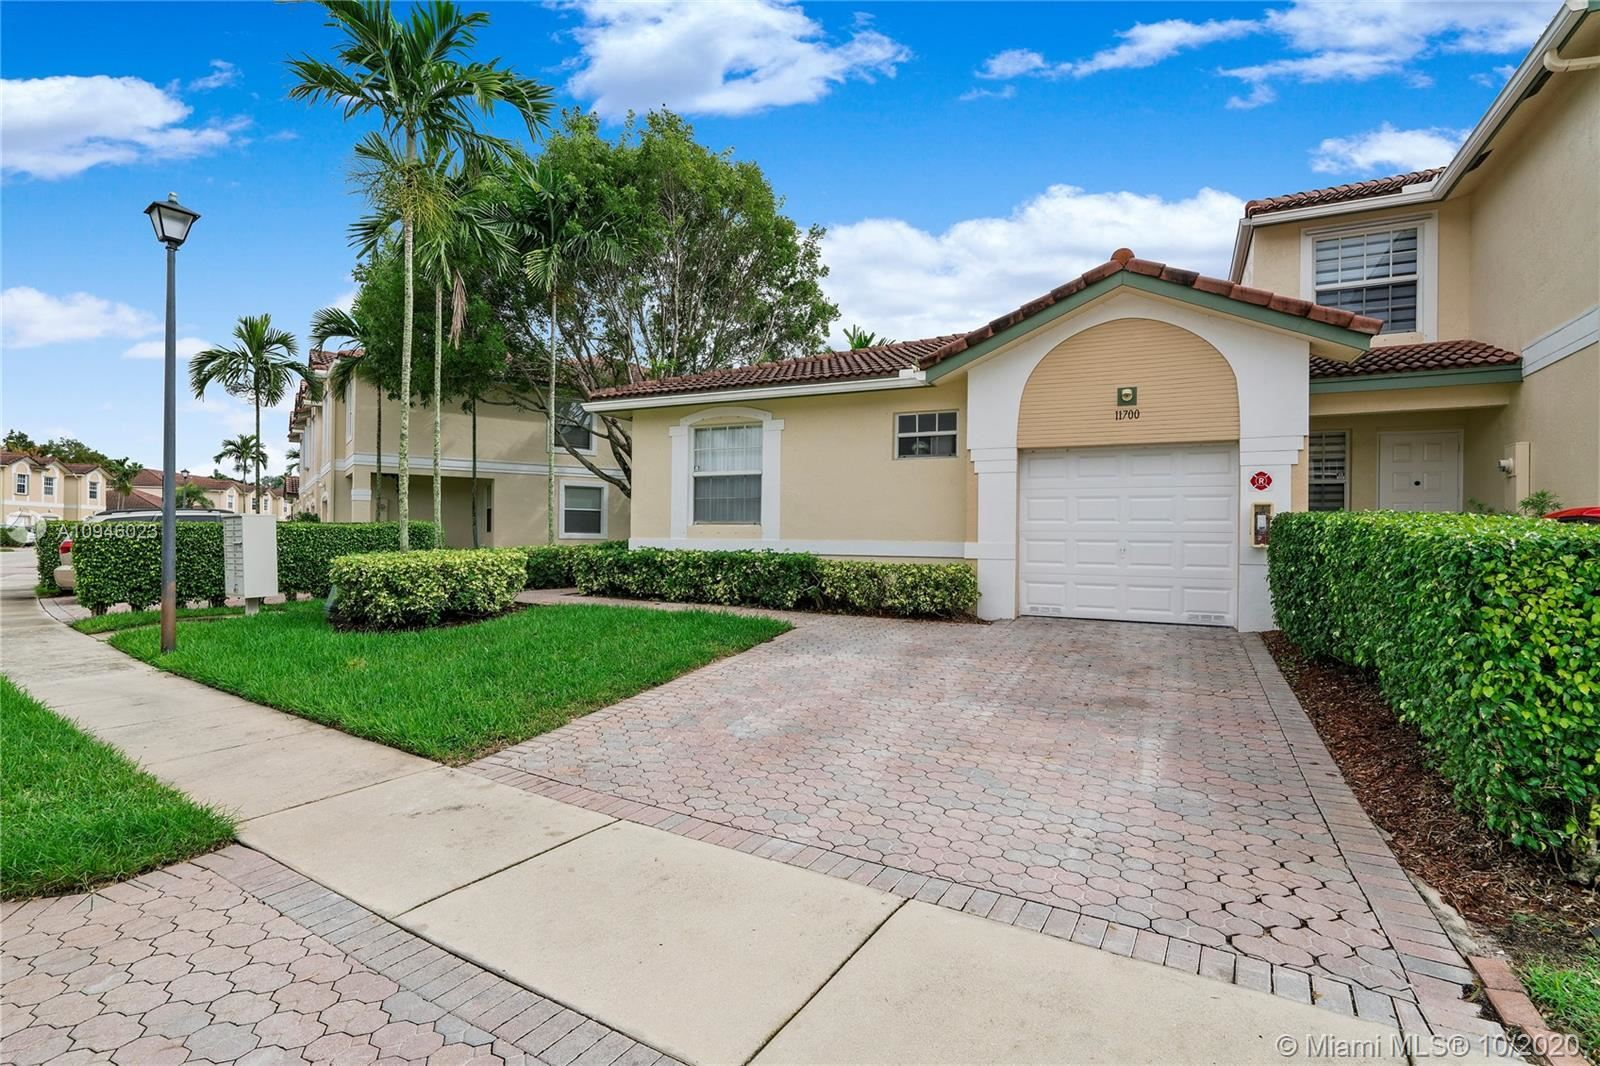 11700 NW 47th Dr, Coral Springs, FL 33076 - #: A10946023